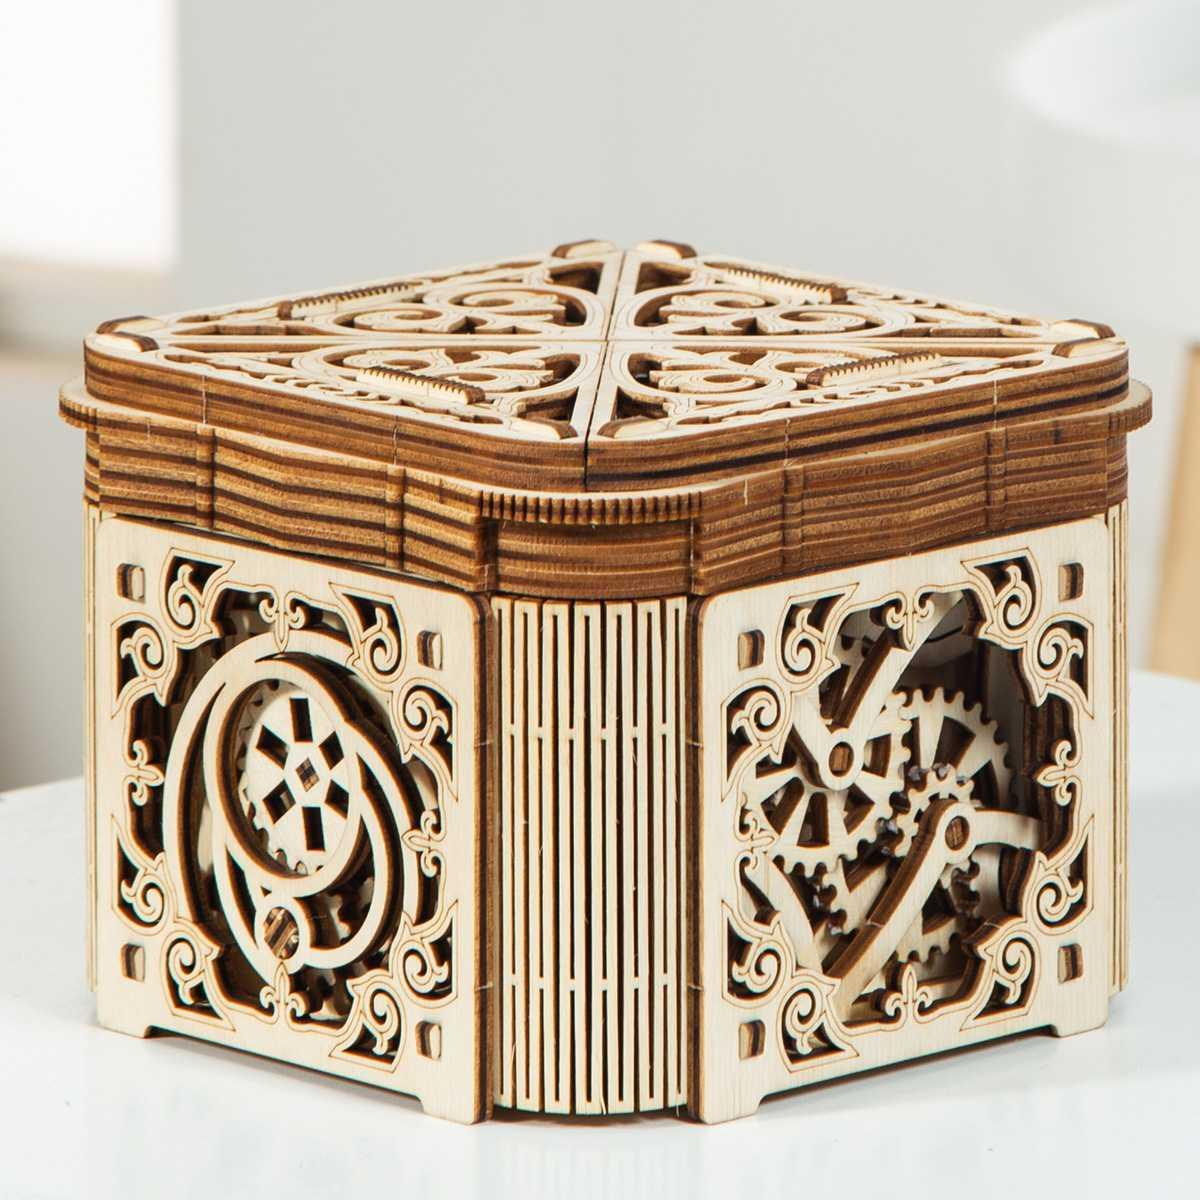 . Creative DIY hand assembled toy wooden mechanical transmission 3D jigsaw puzzle model hidden ring table white gift